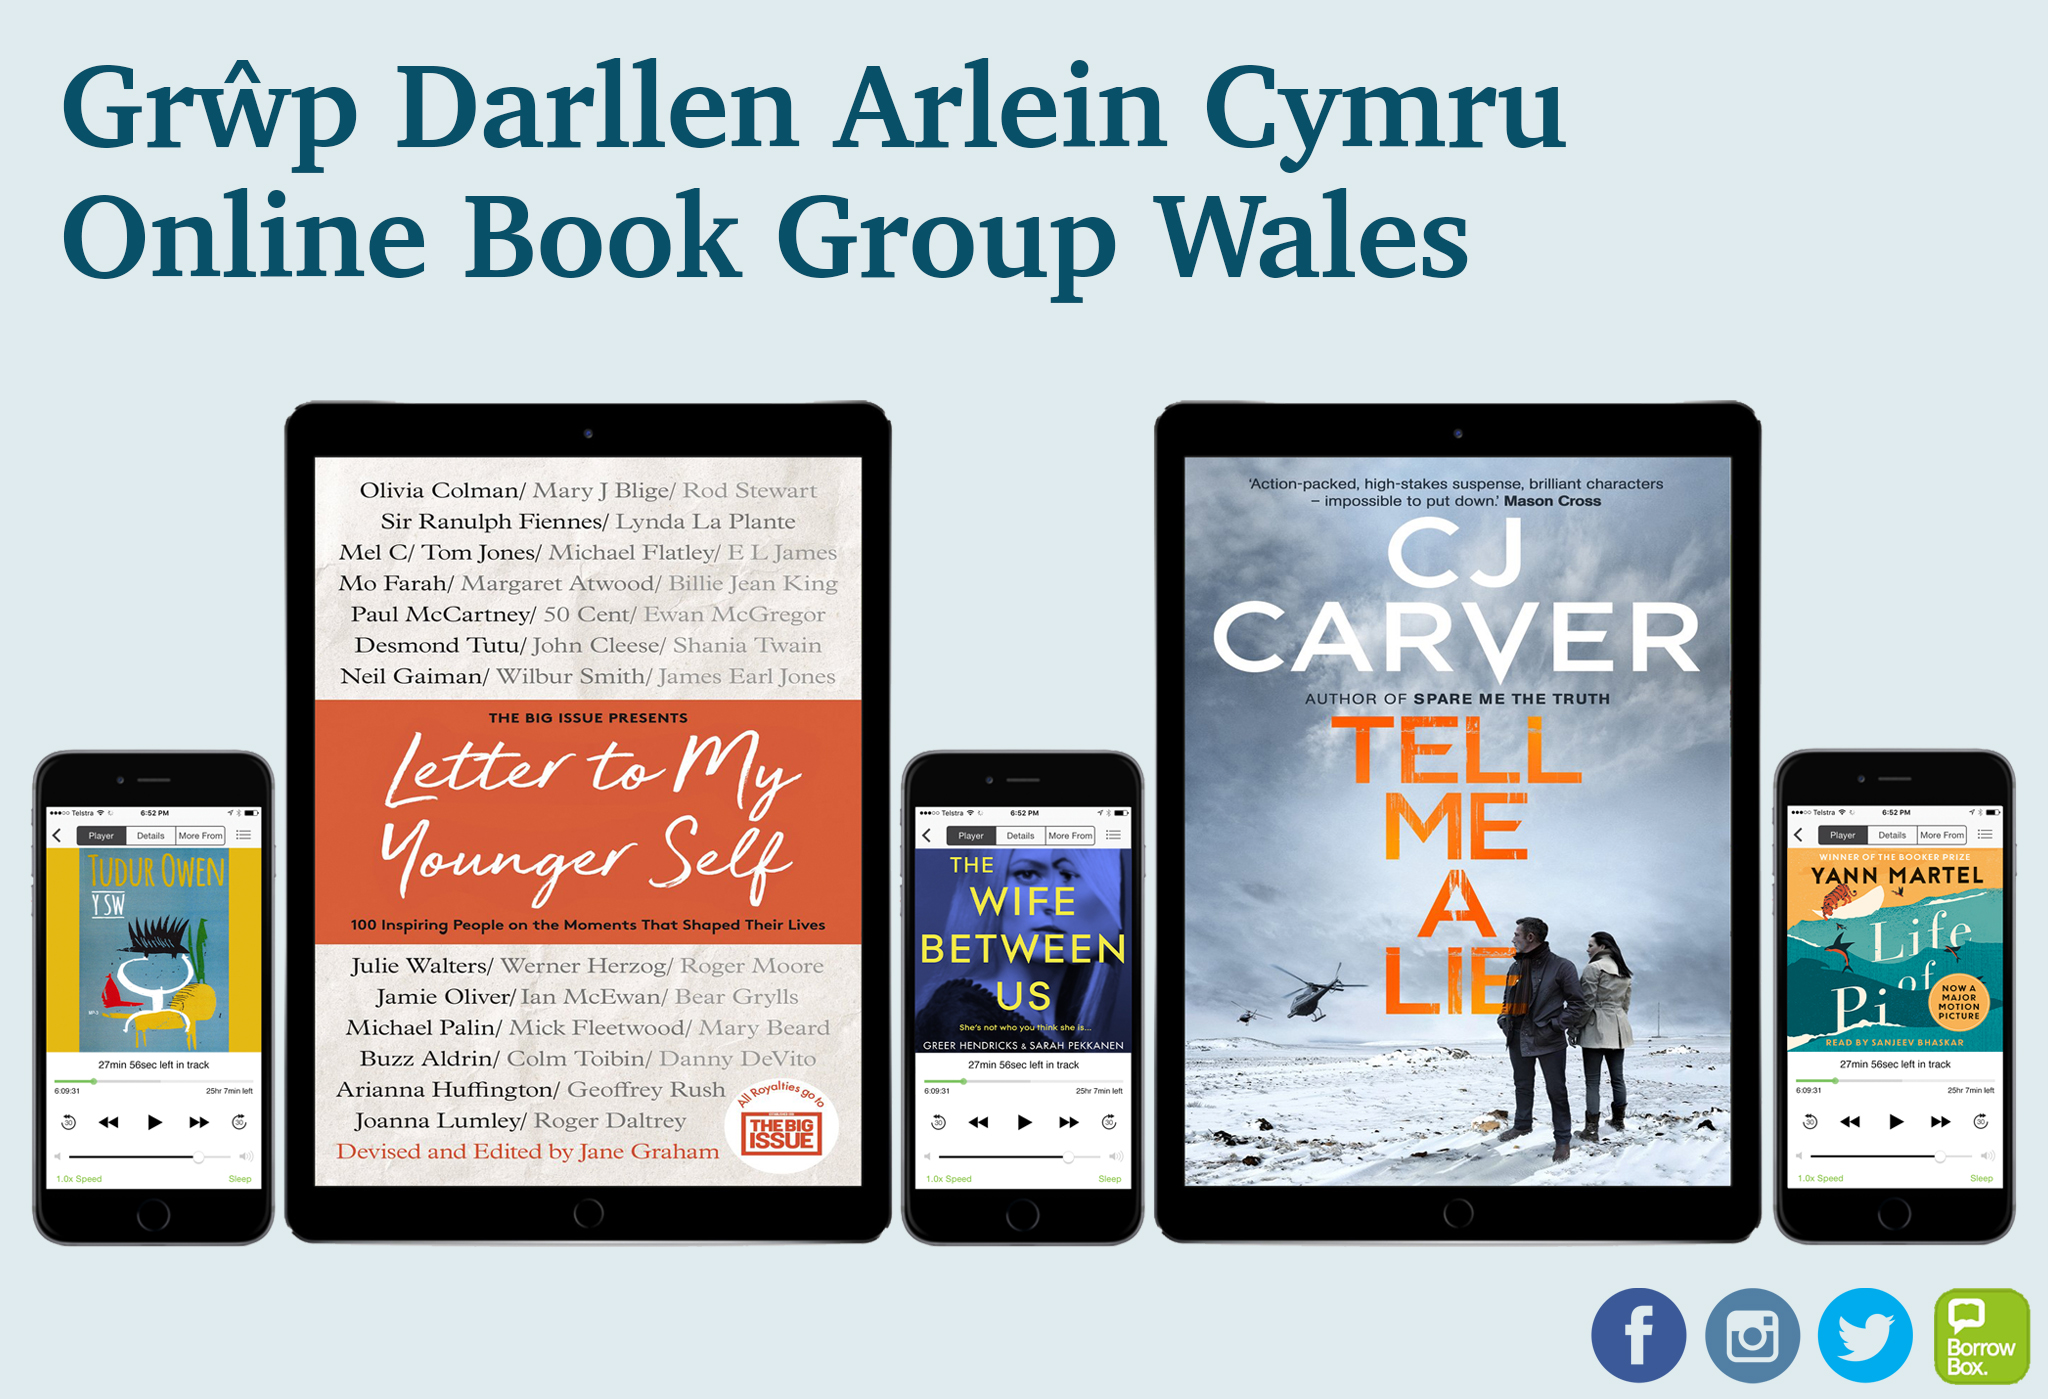 Reading choices for Online Book Group Wales